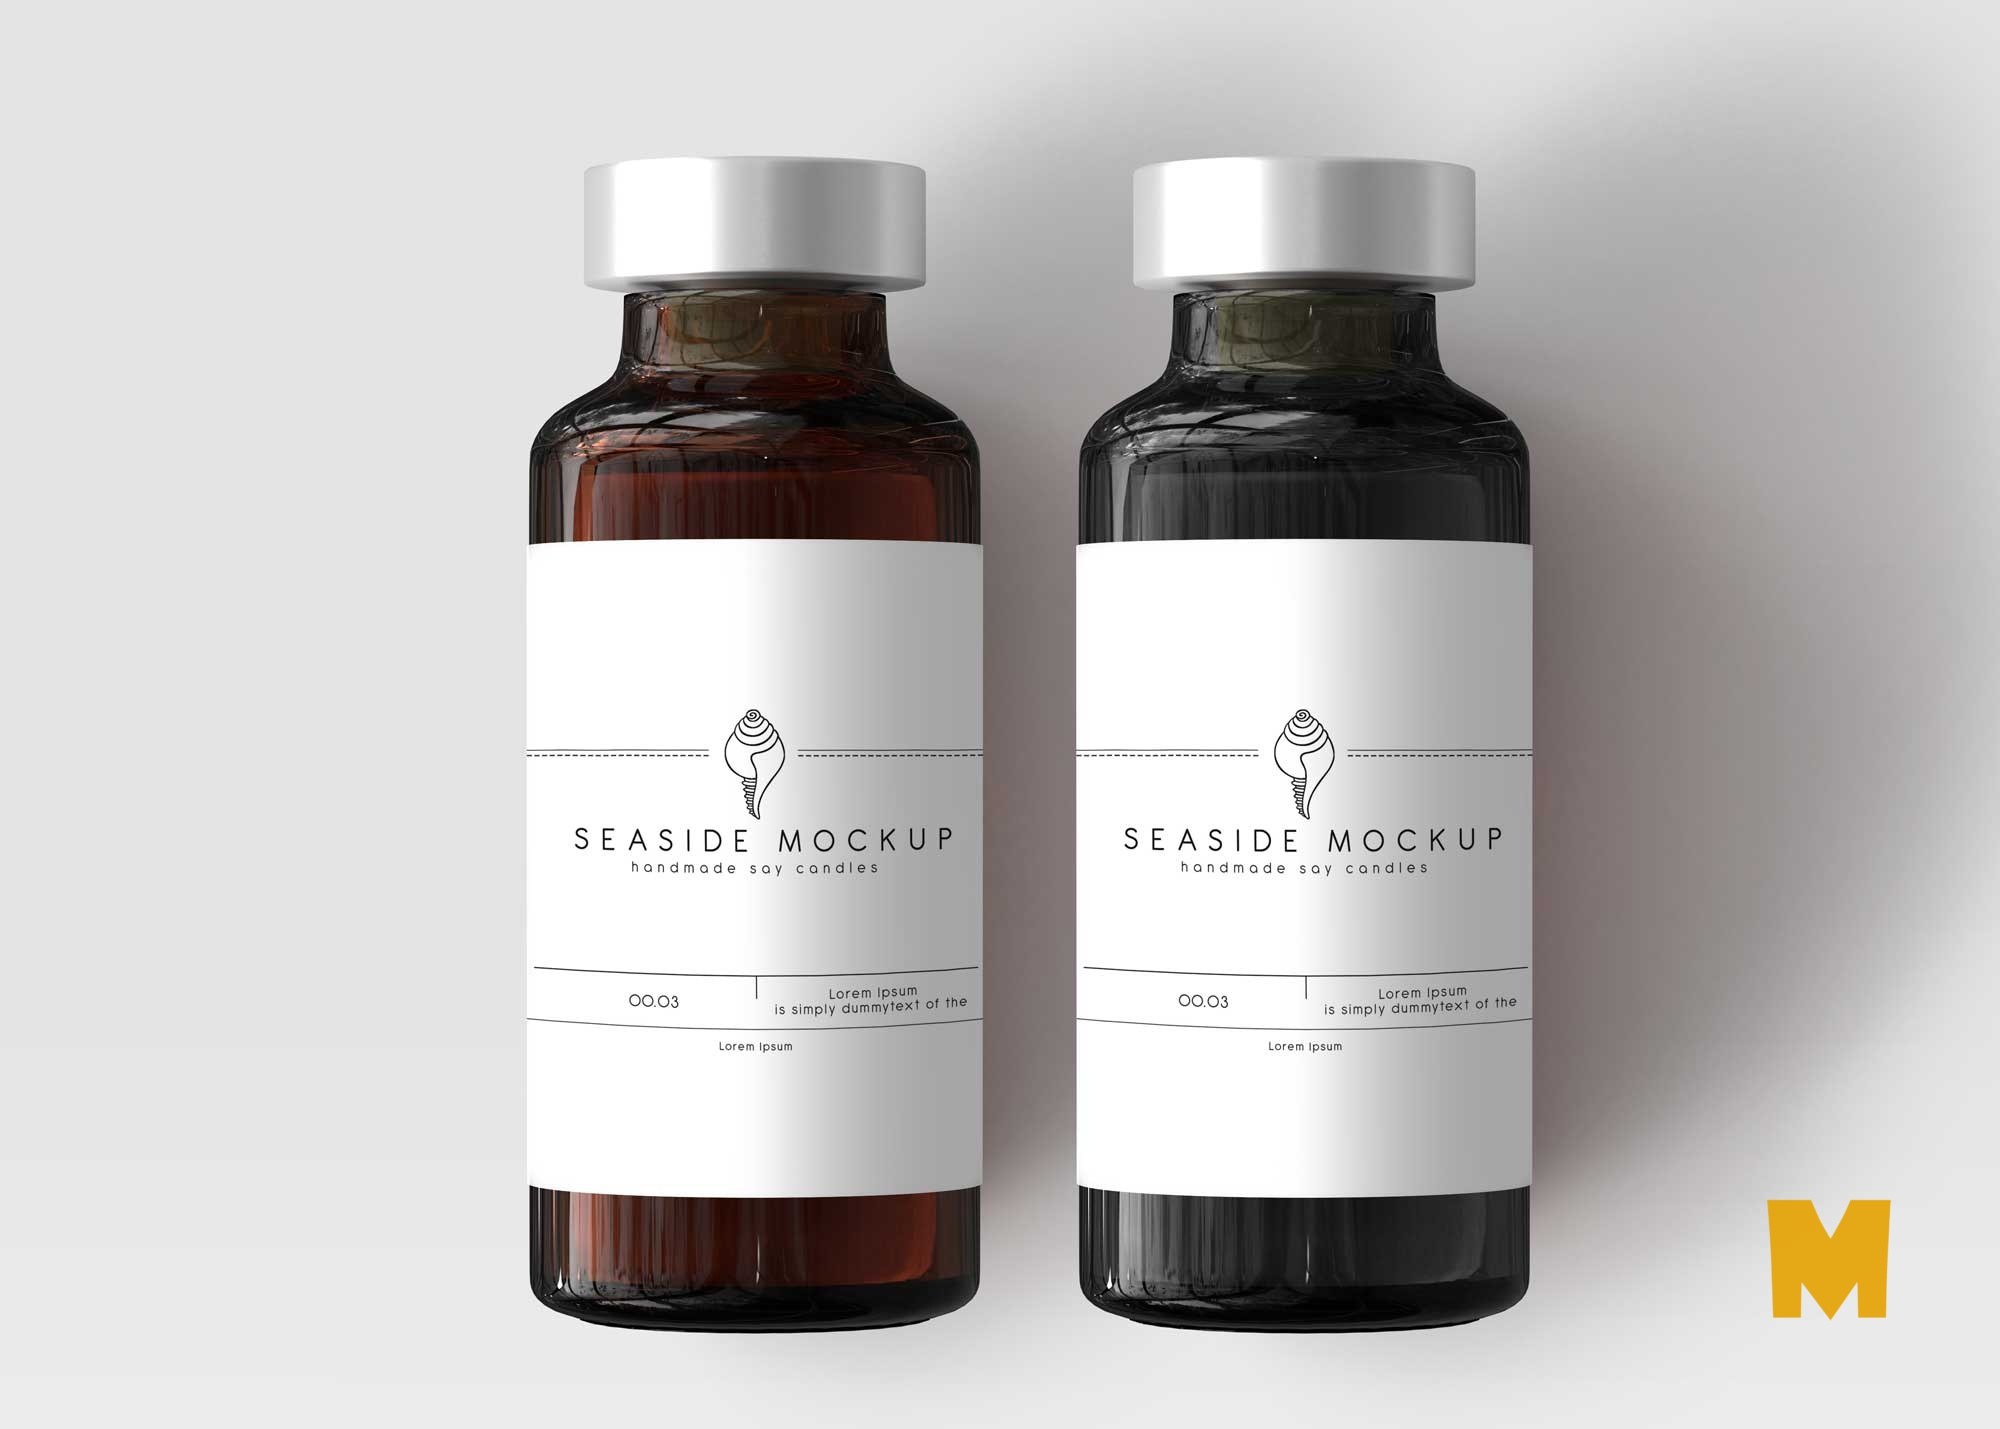 Free Syrup Bottle Label Mockup